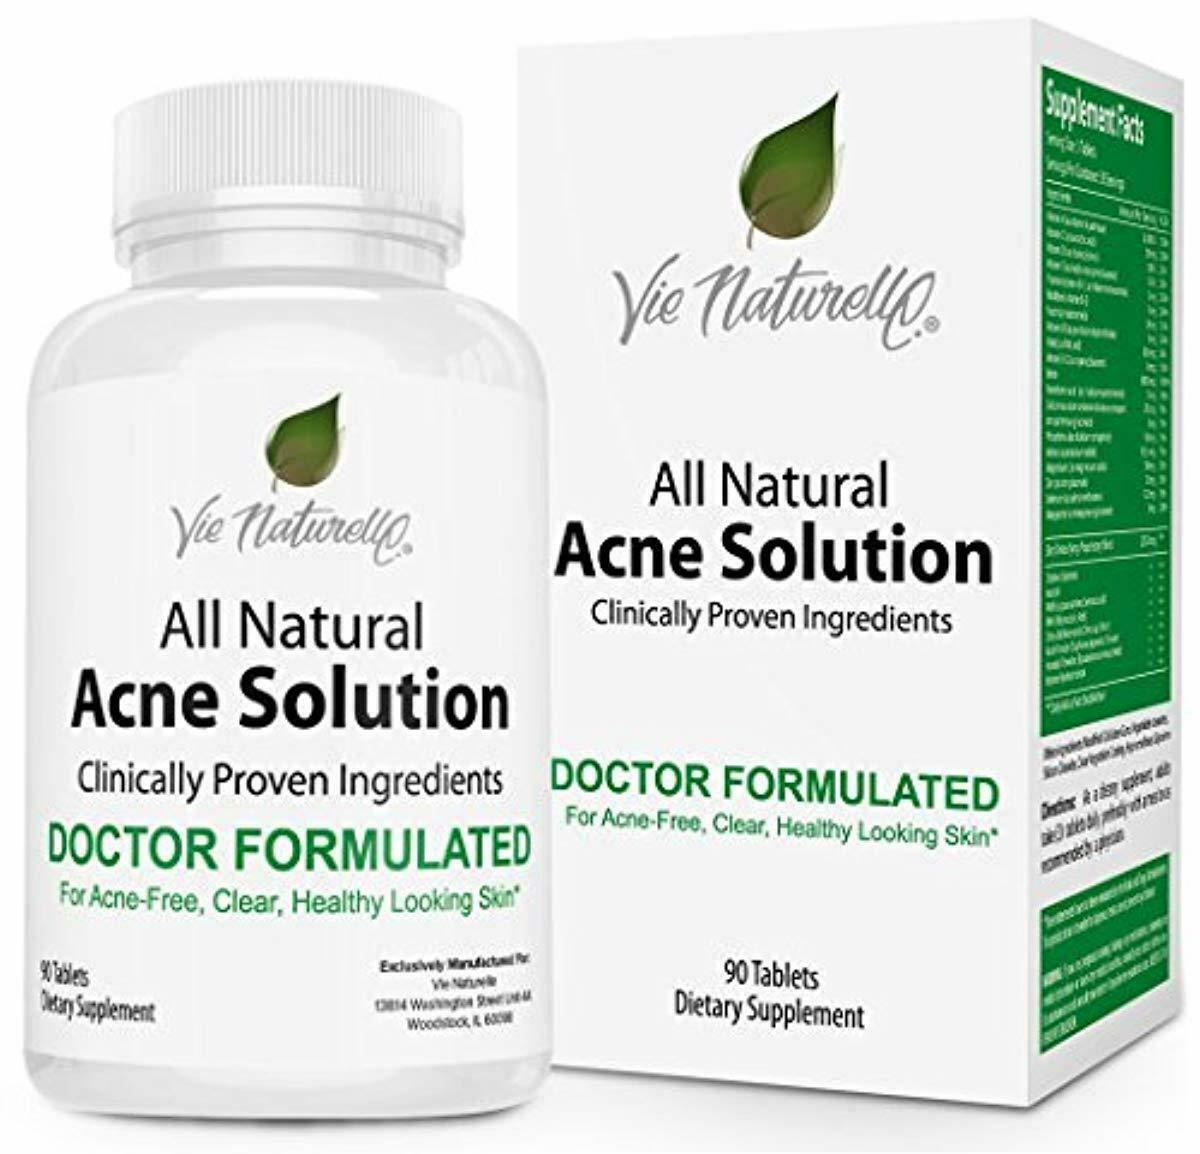 Acne Vitamins Supplements for Acne Treatment - 90 Natural Su